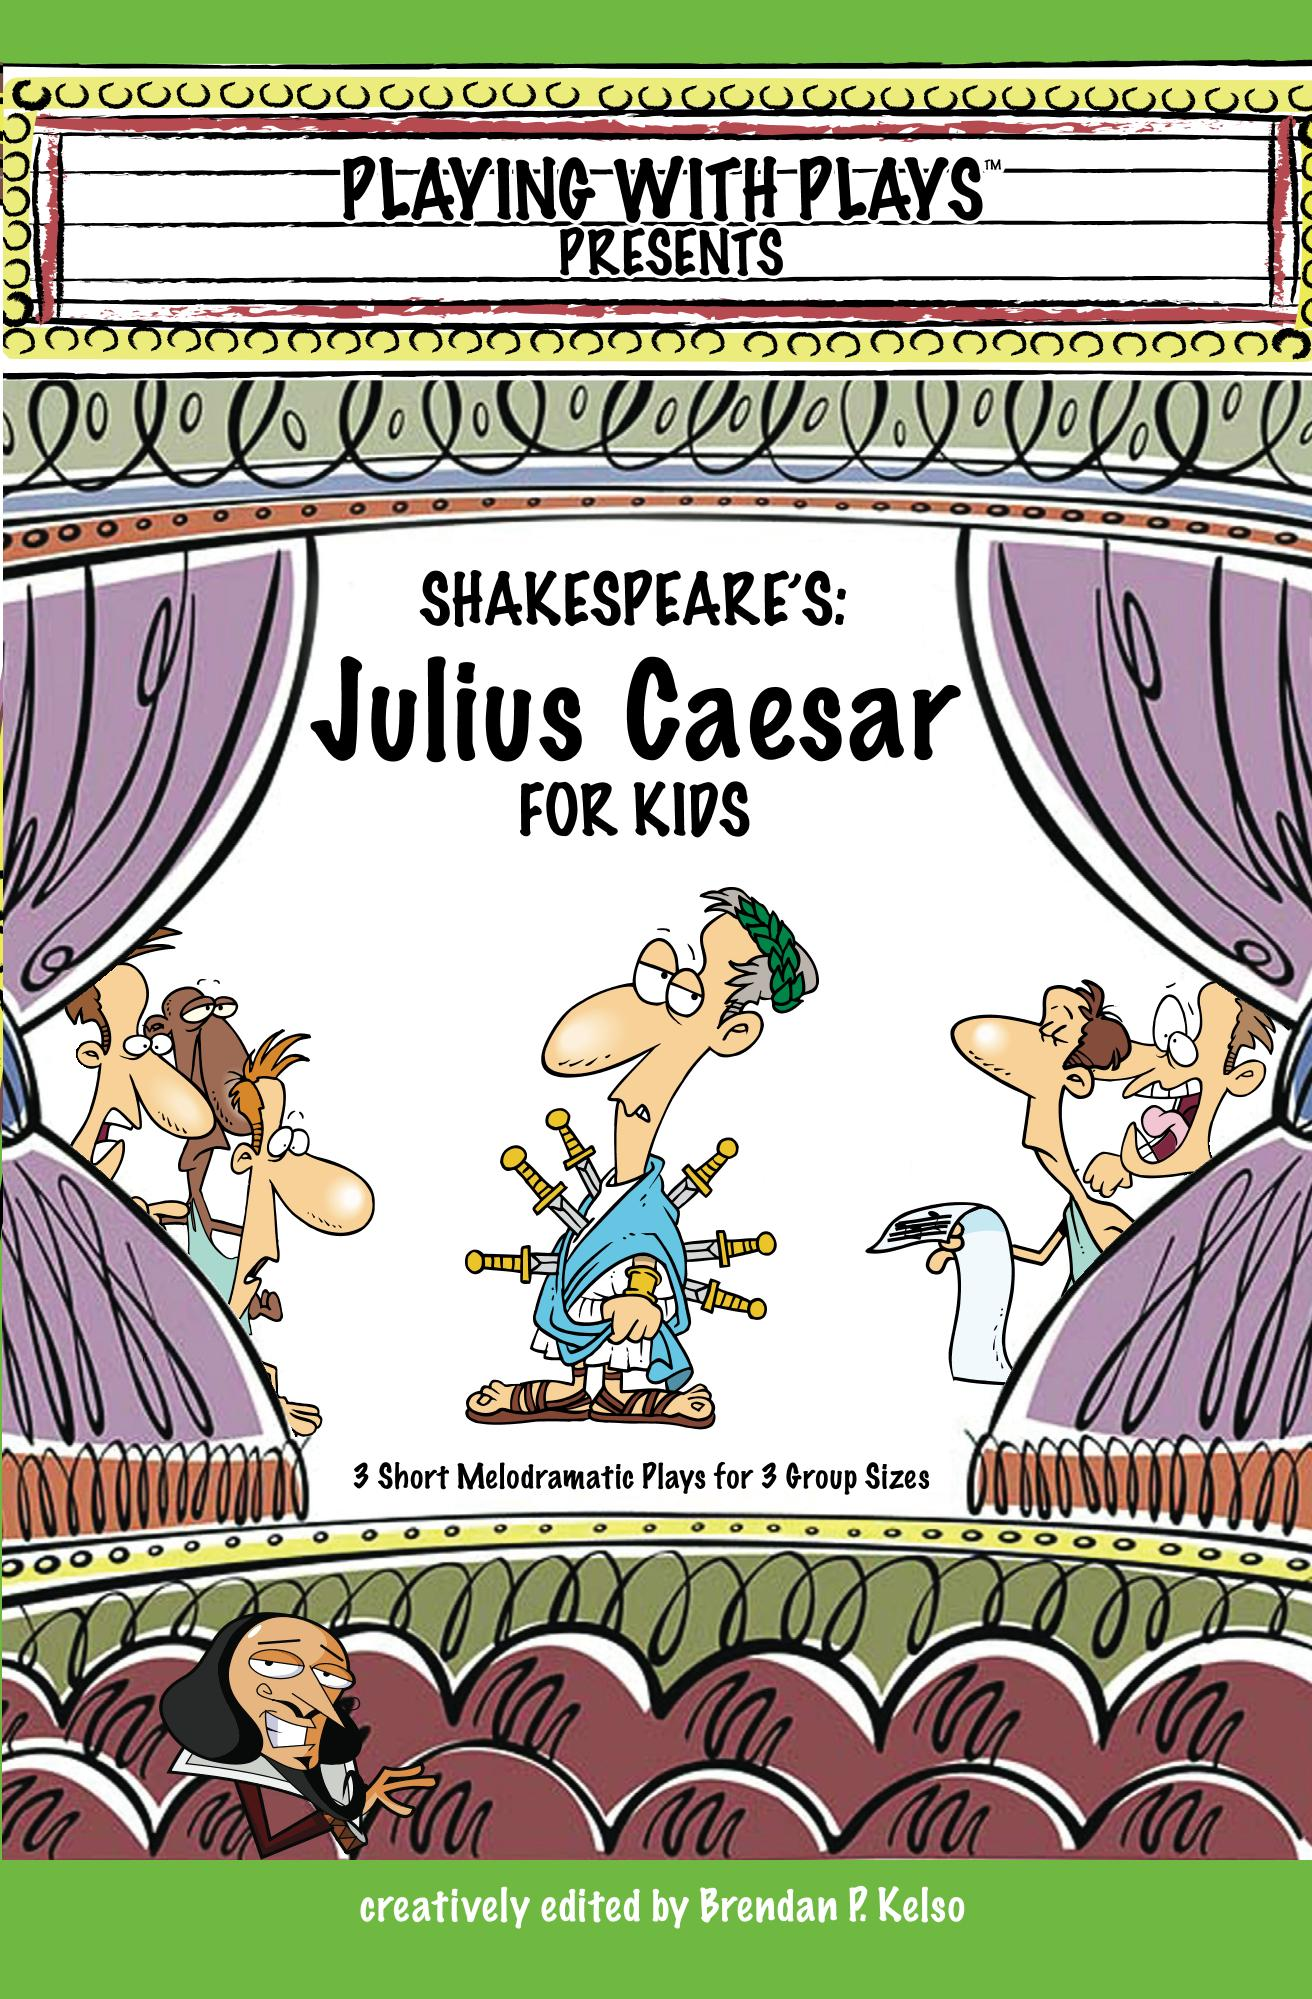 Top 10 Male Shakespeare Characters for Kids to Perform - Shakespeare